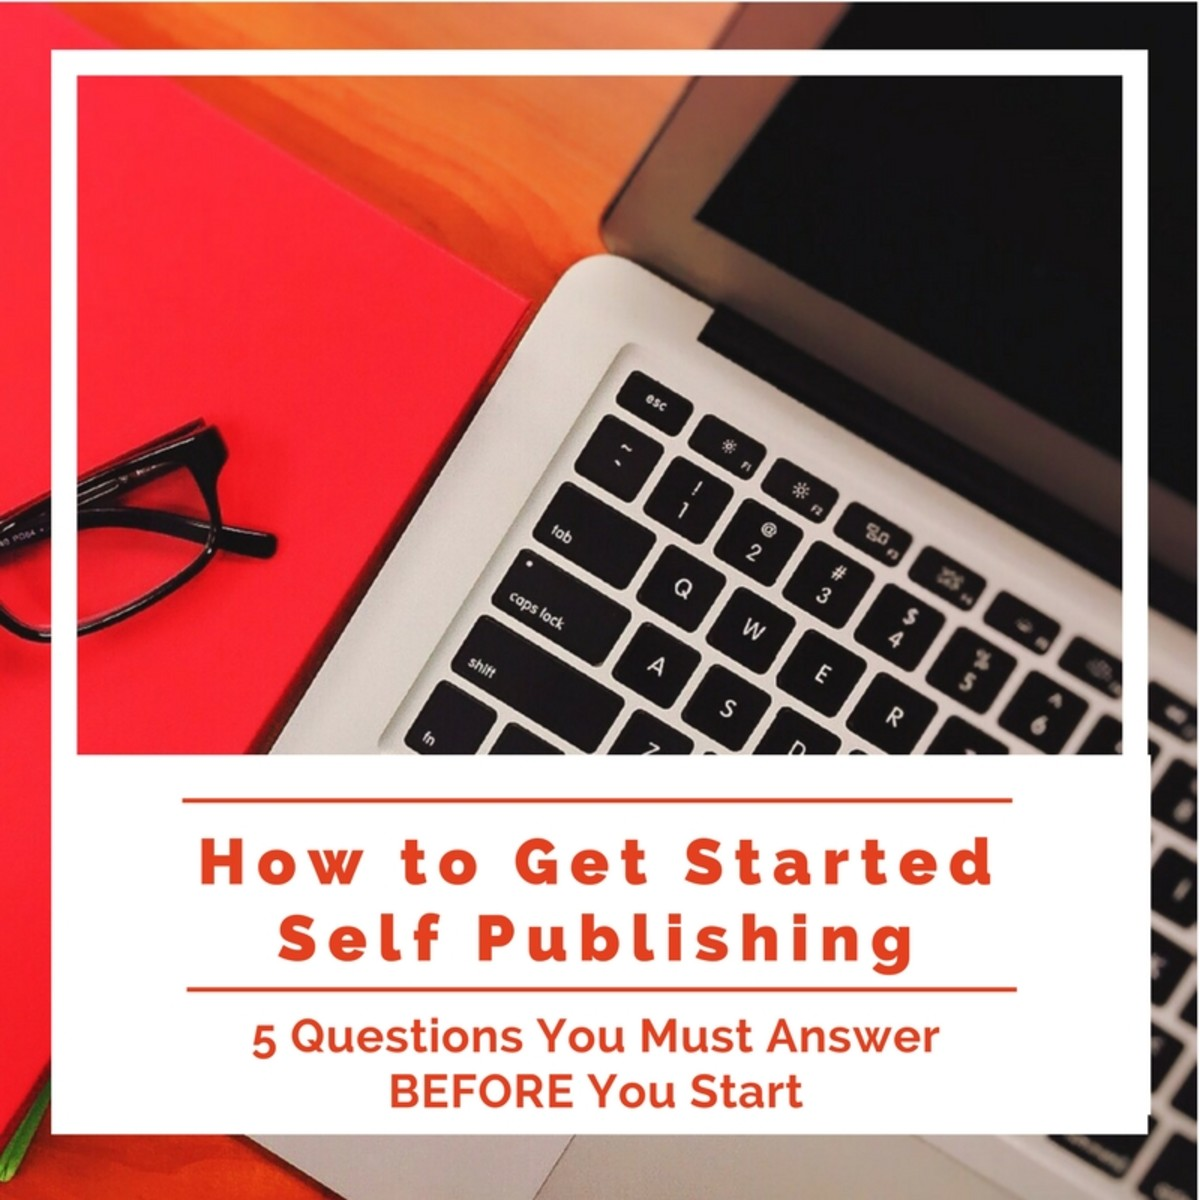 How to Get Started Self Publishing: 5 Questions You Must Answer BEFORE You Start